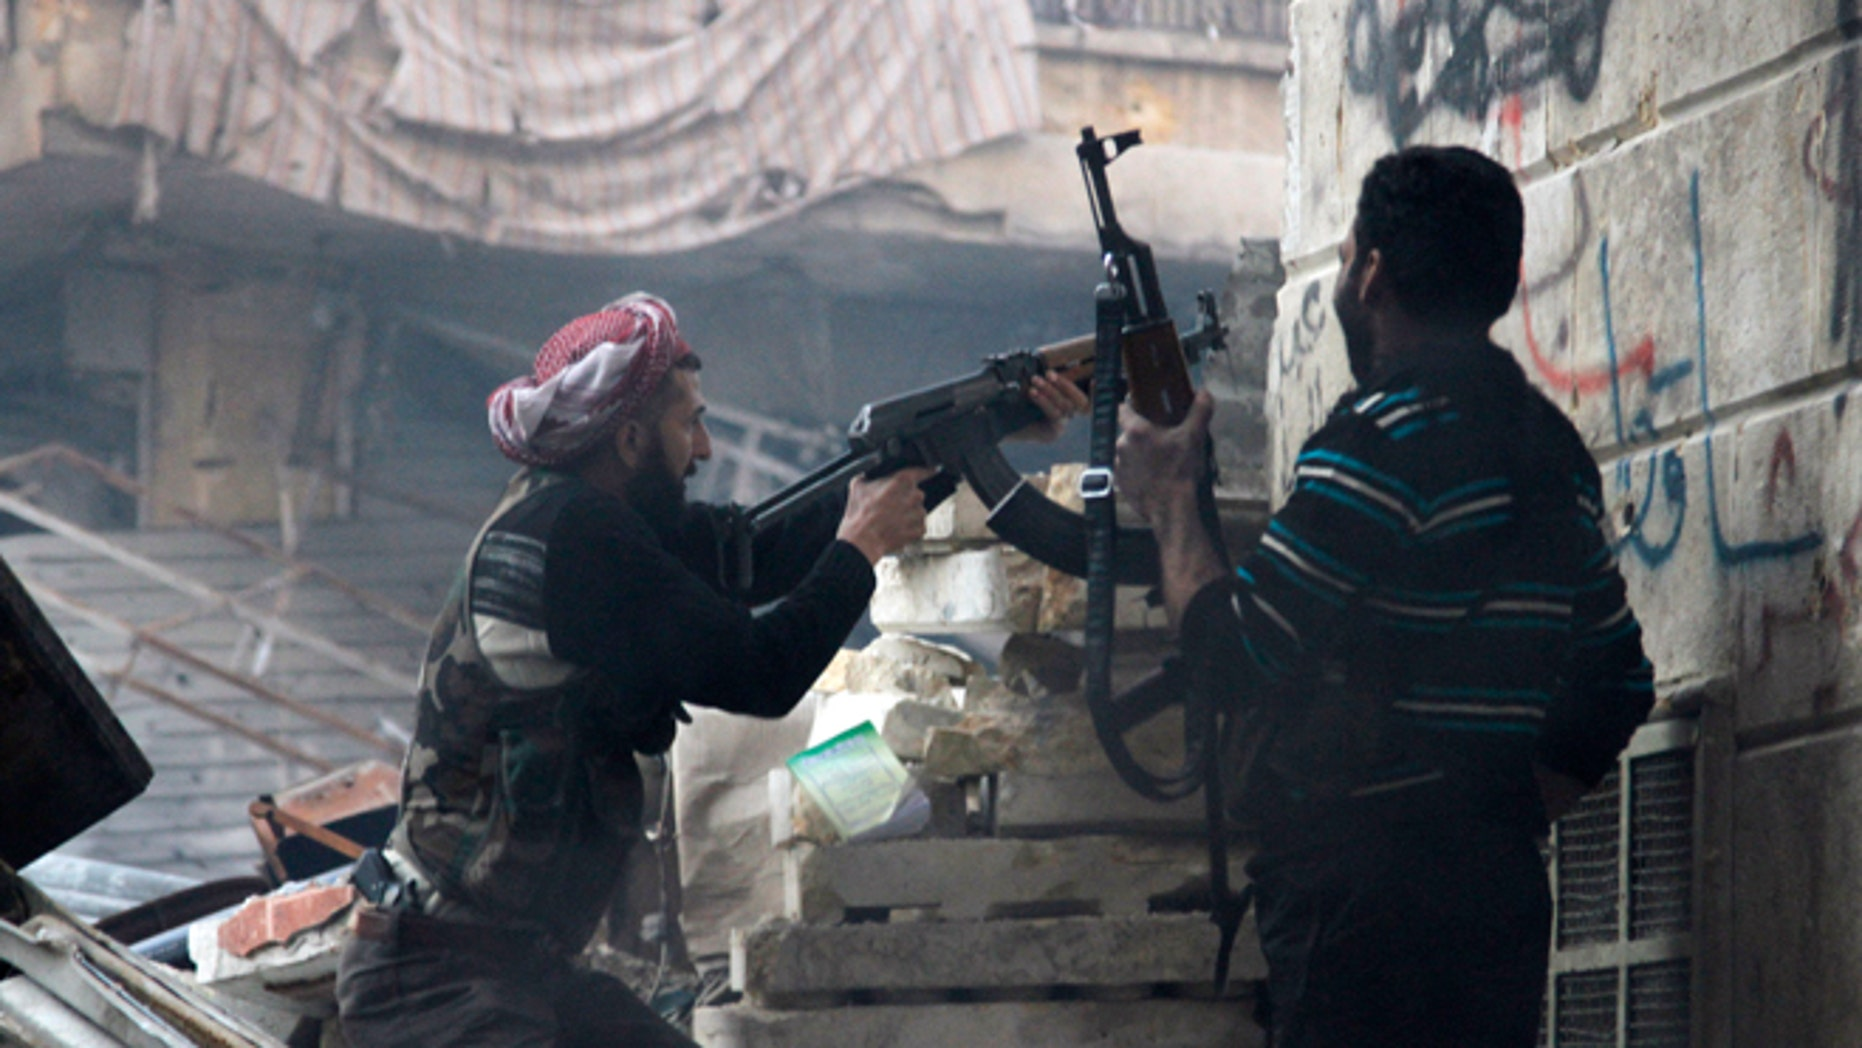 Free Syrian Army fighters fire at enemy positions during heavy clashes with government forces, in the Salaheddine district in Aleppo, Syria. Weapons and money are now flowing in from Kuwait. (AP)